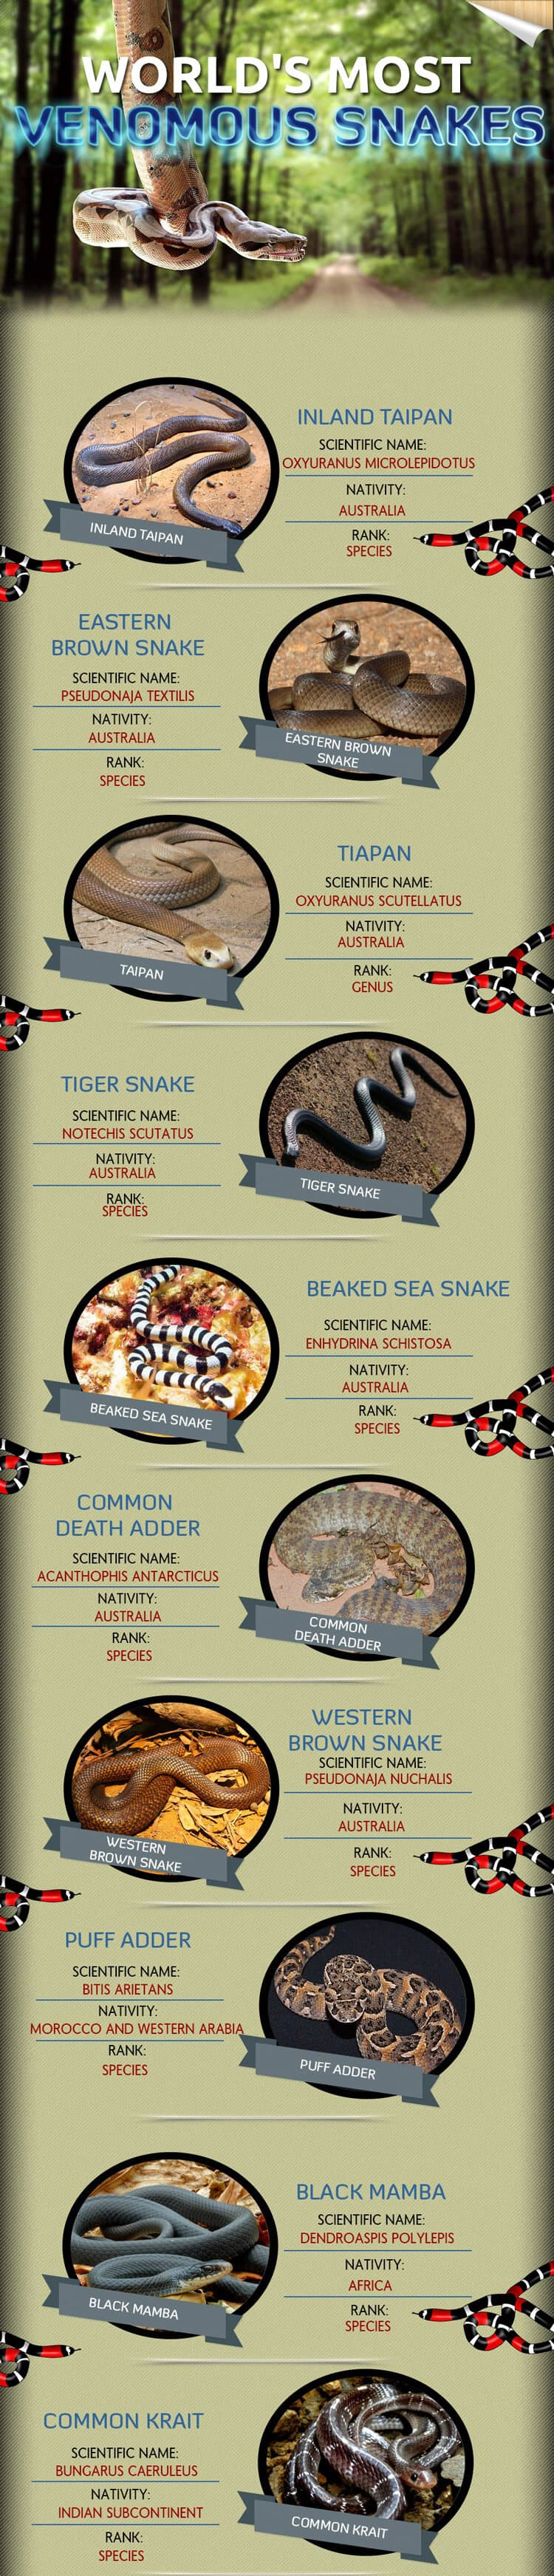 Worlds-most-venomous-snakes